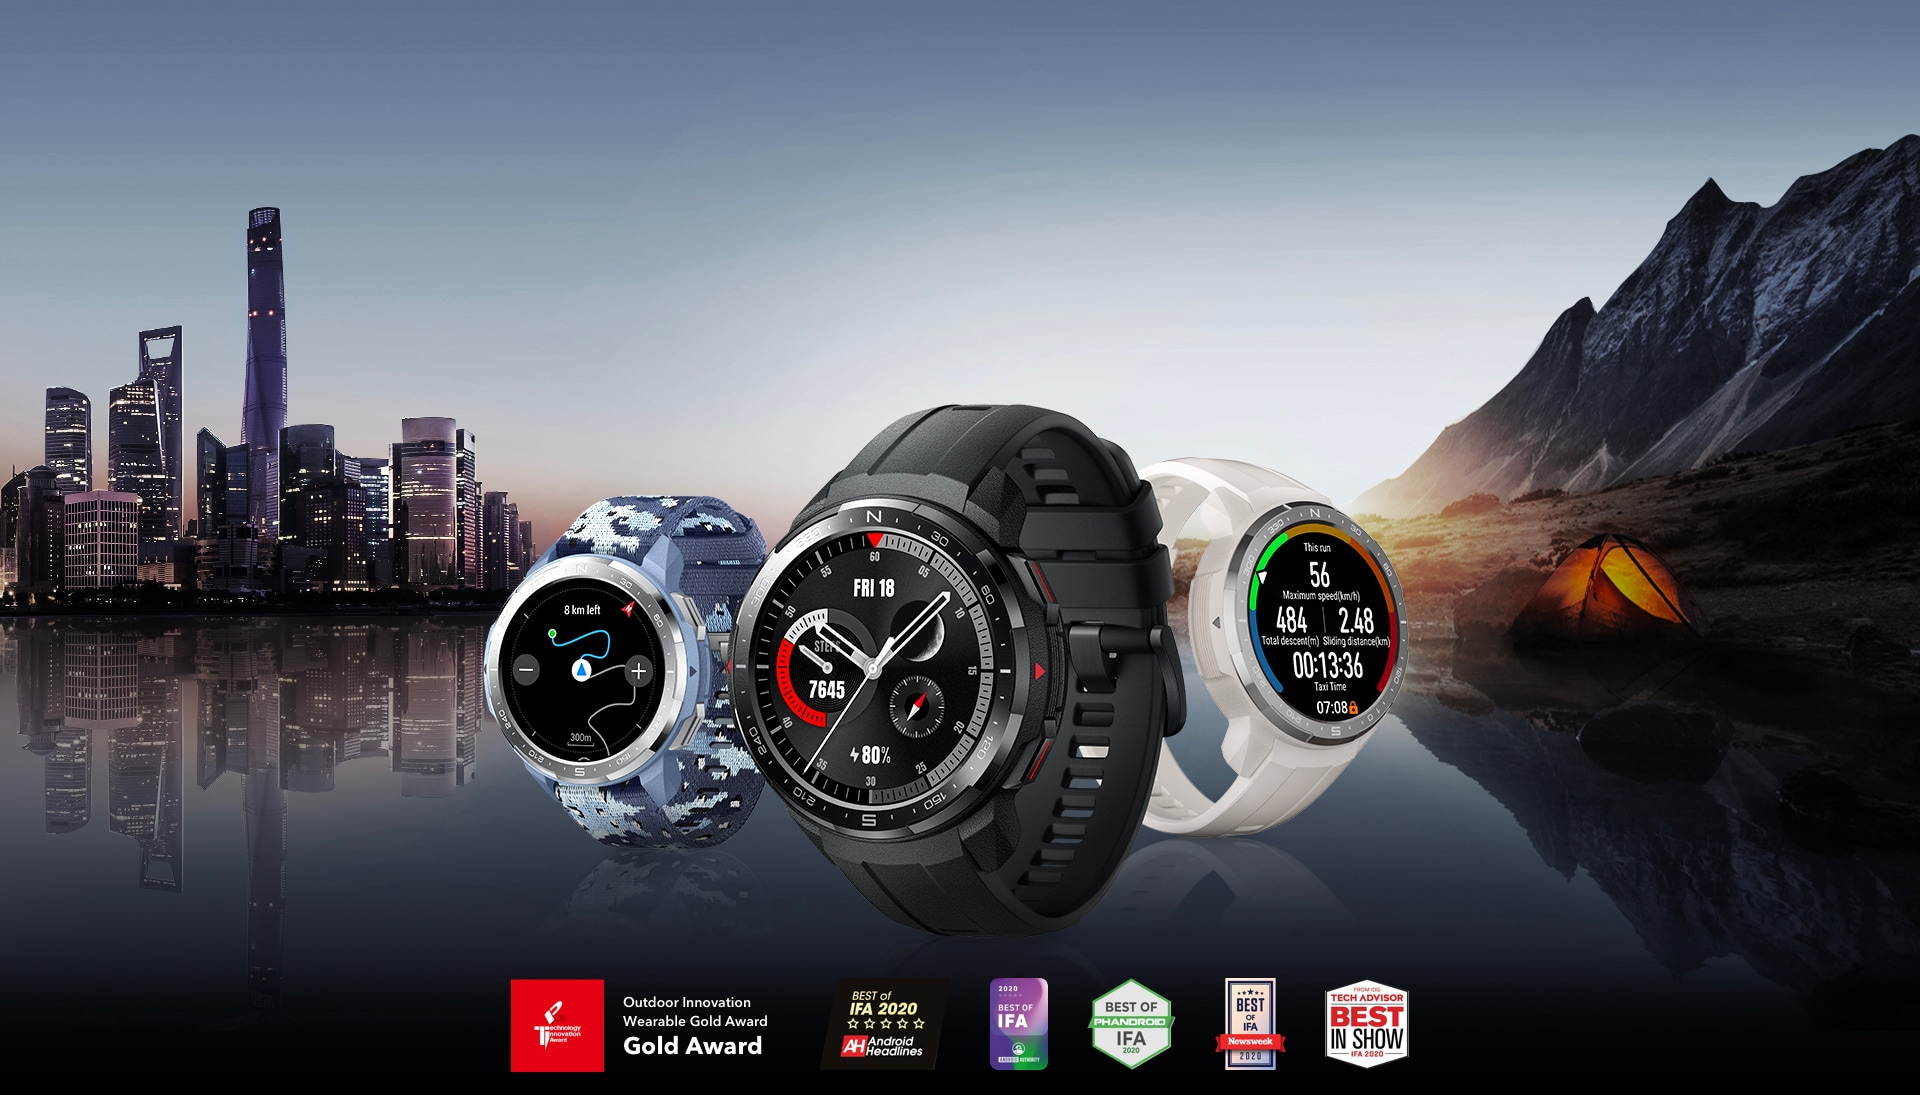 HONOR Watch GS Pro Montre GPS - Test & Avis - Mon GPS Avis.fr